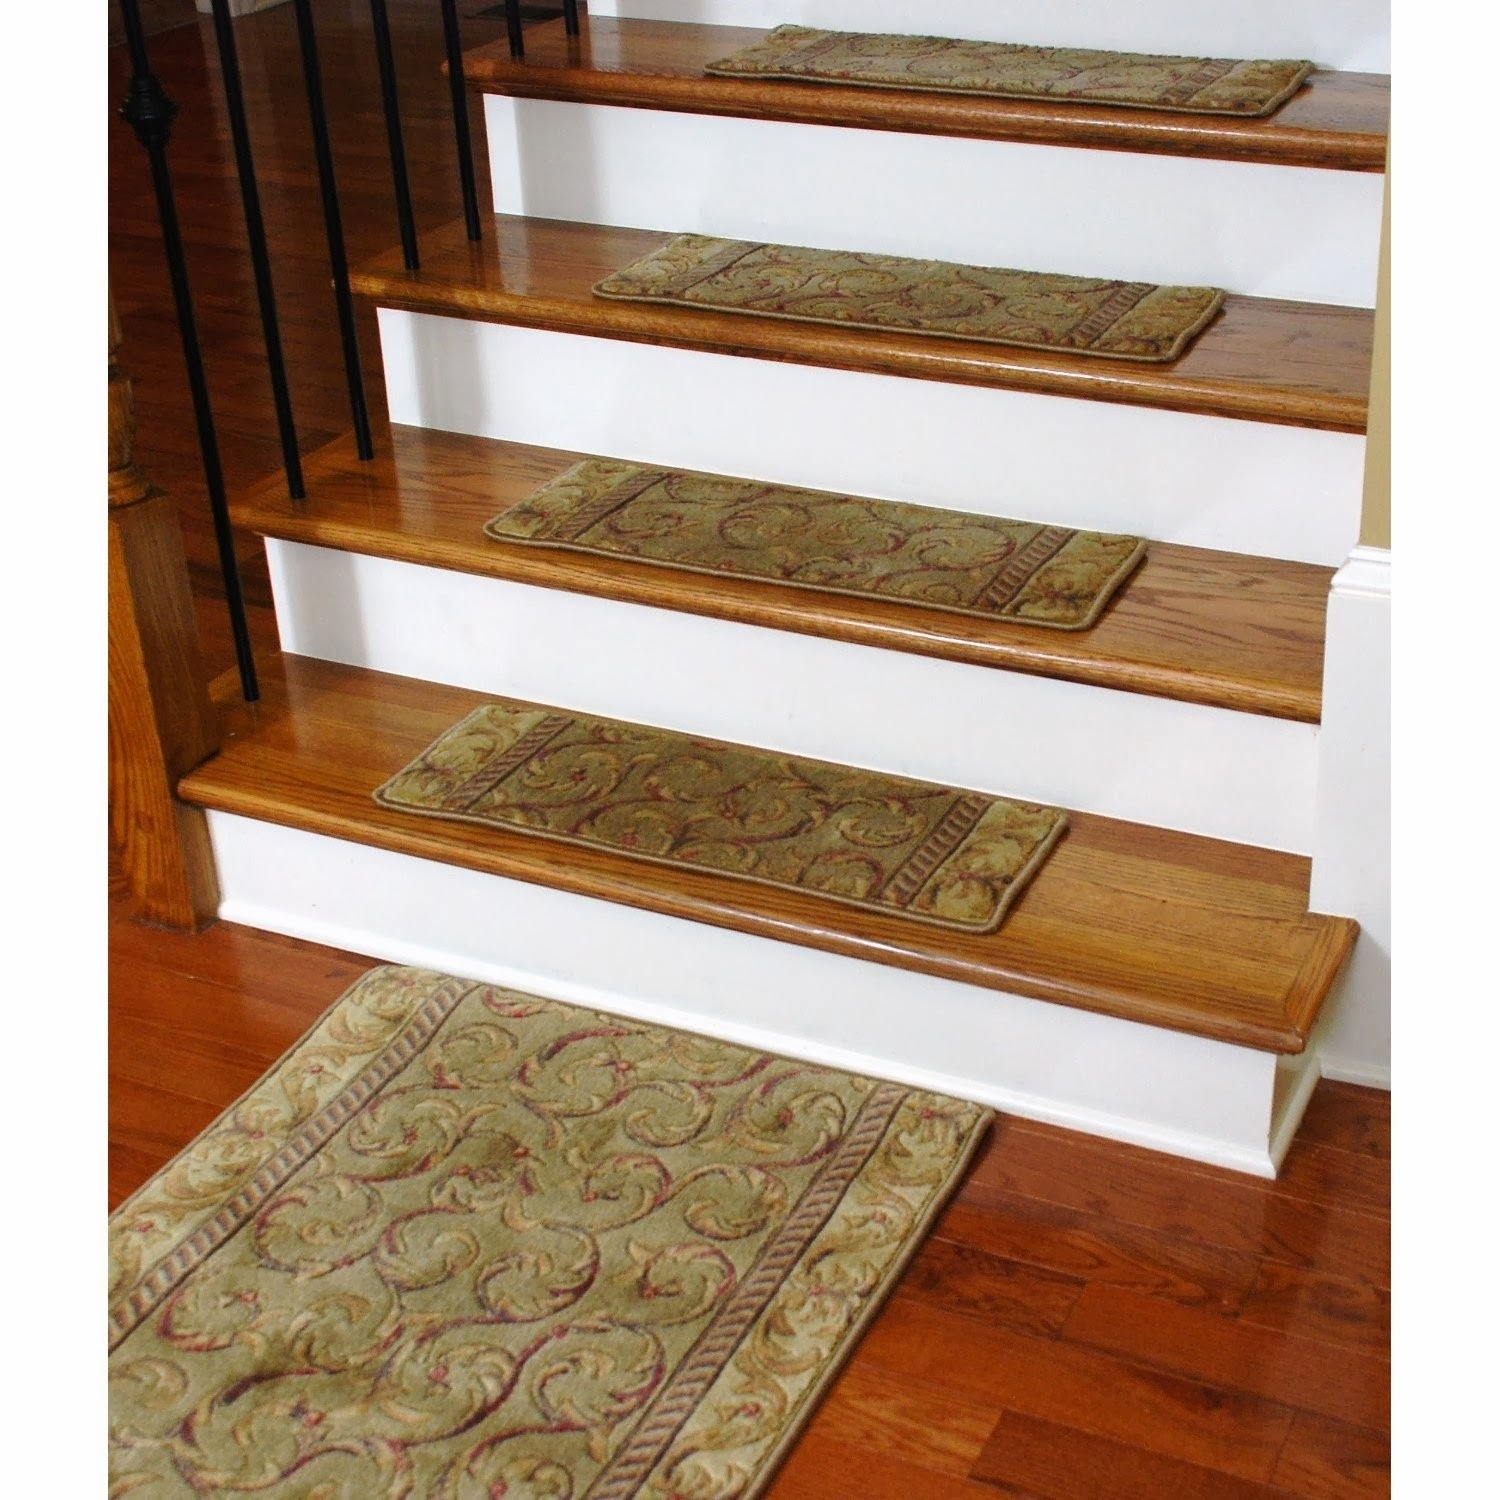 40 Carpet Treads For Stairs Uk Ucc Woven Stair Carpet Lifestyle Throughout Stair Tread Carpet Runners (#2 of 20)